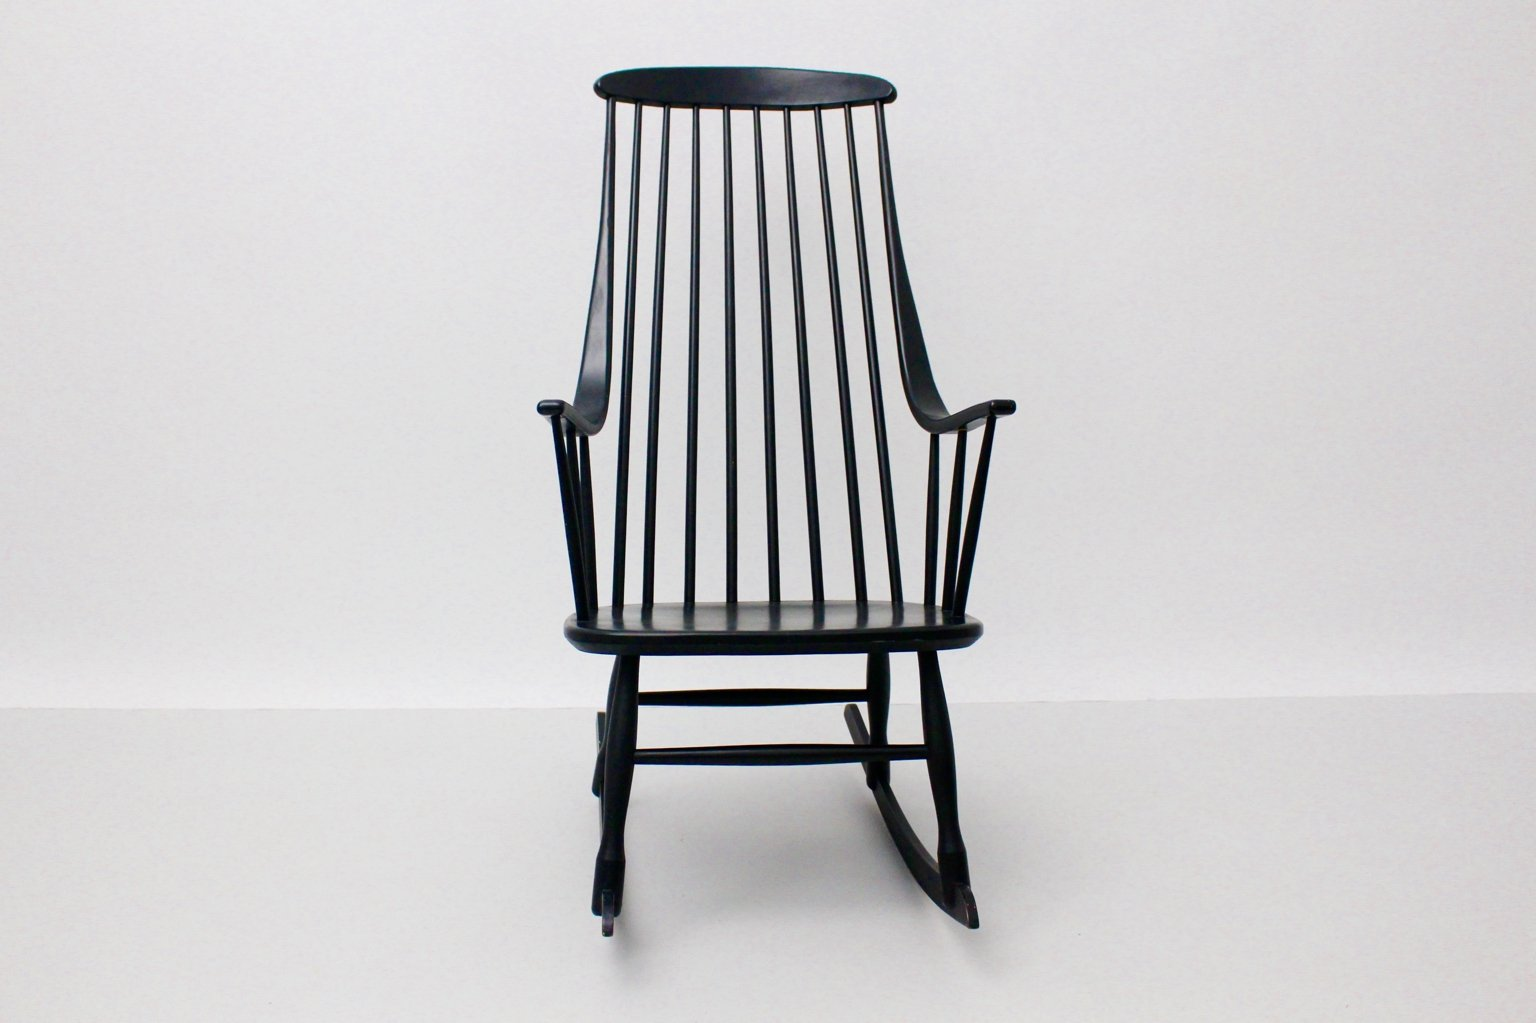 black rocking chairs fire pit table and set grandessa chair by lena larsson for nesto